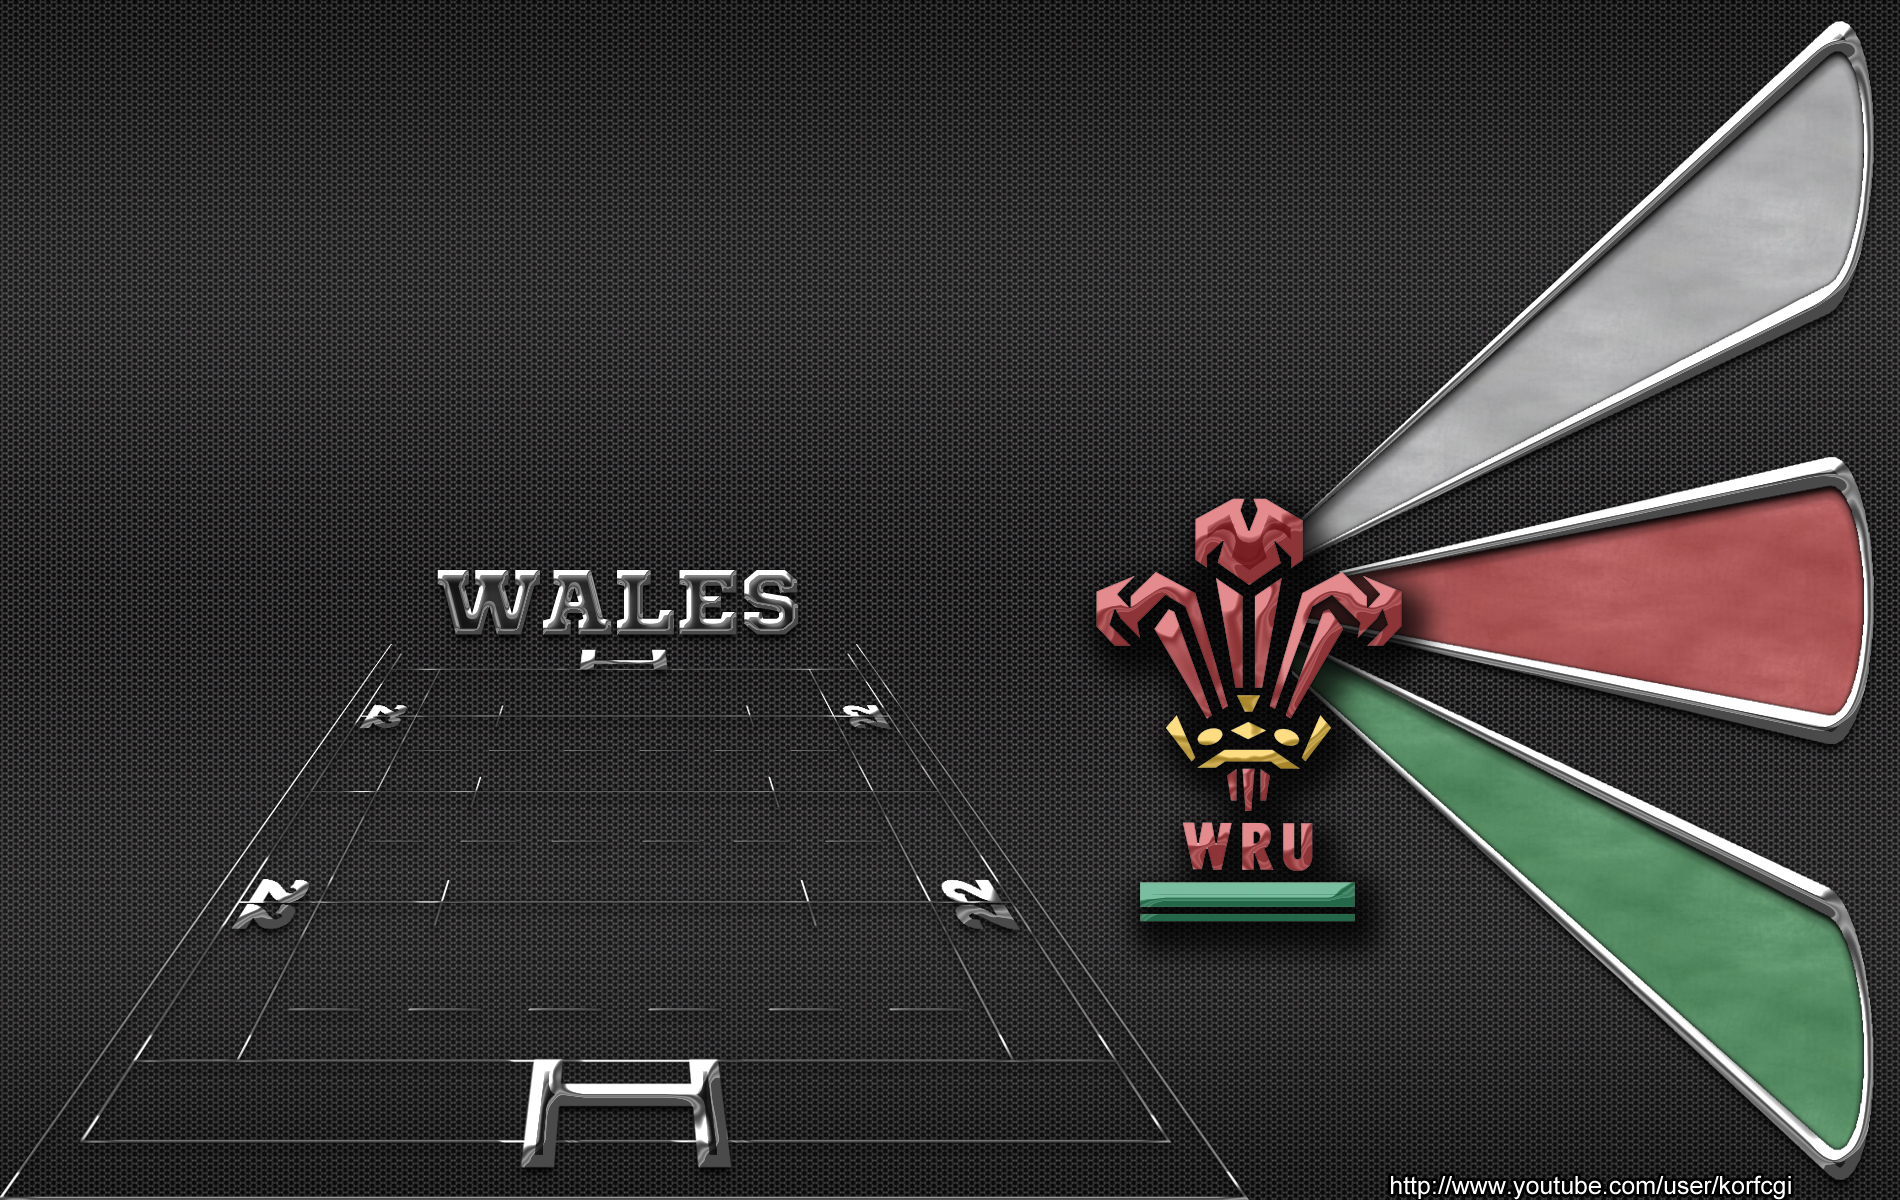 Wales rugby wallpaper by KorfCGI 1900x1200